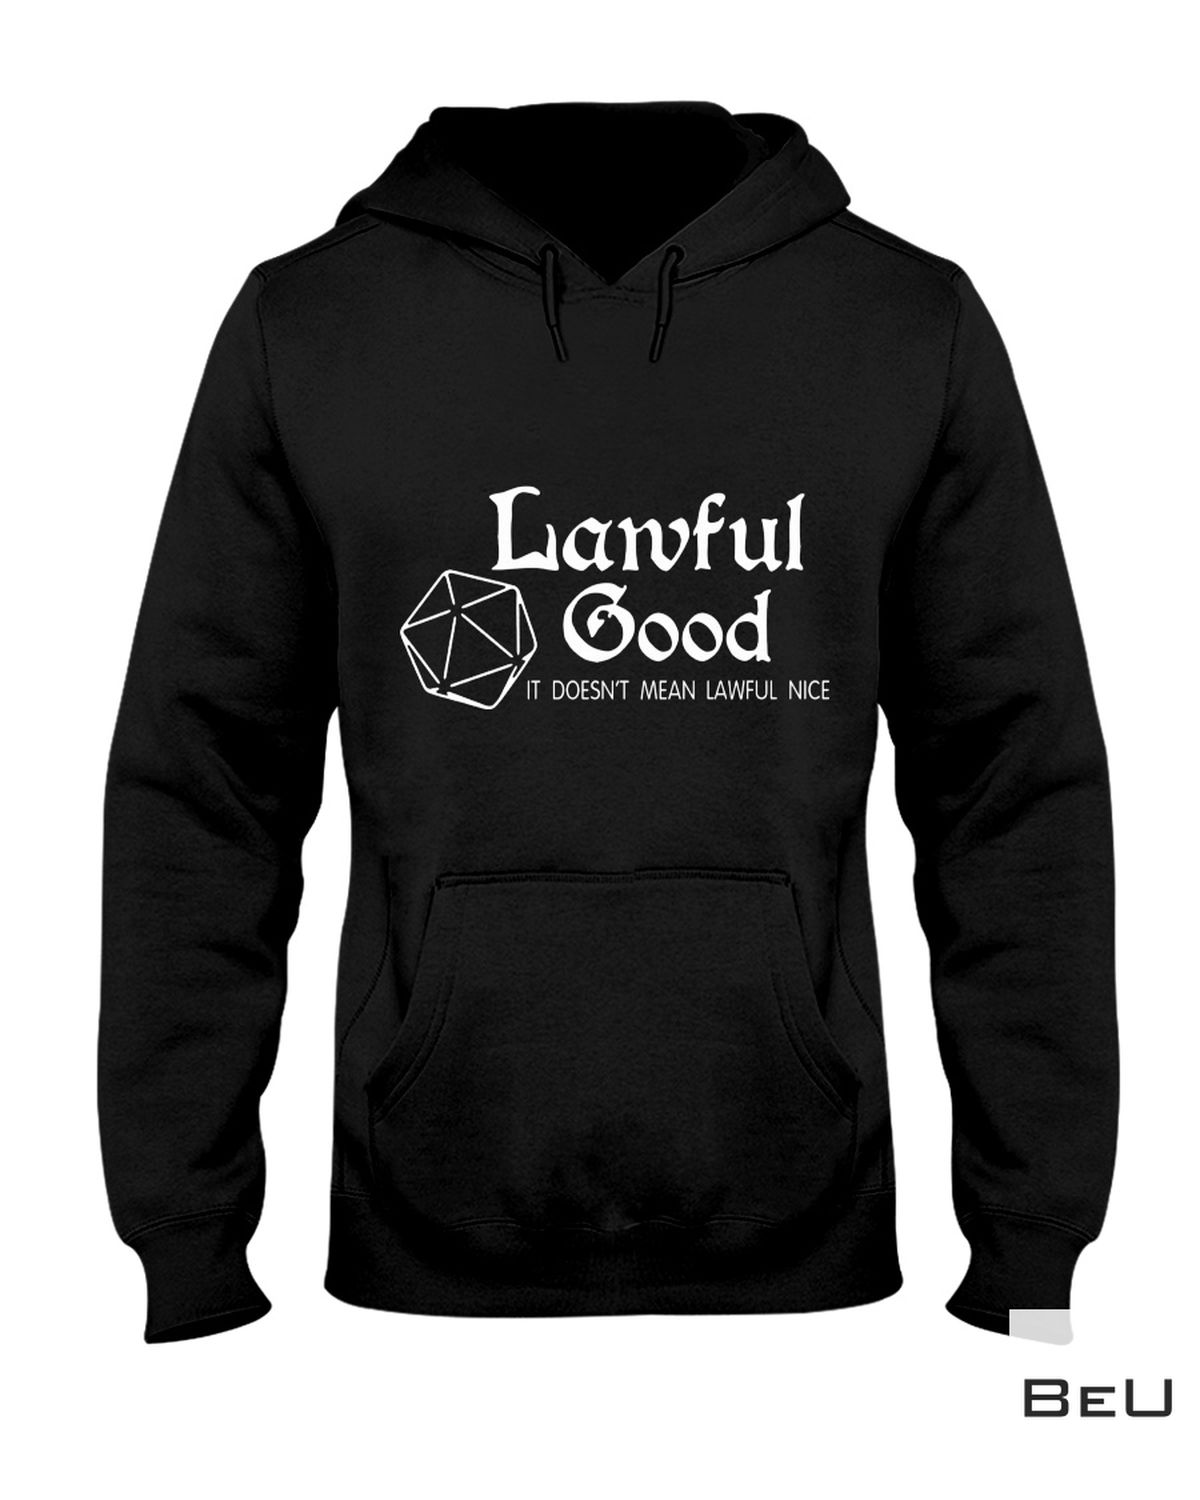 Lawful Good Doesn't Mean Lawful Nice Shirt a